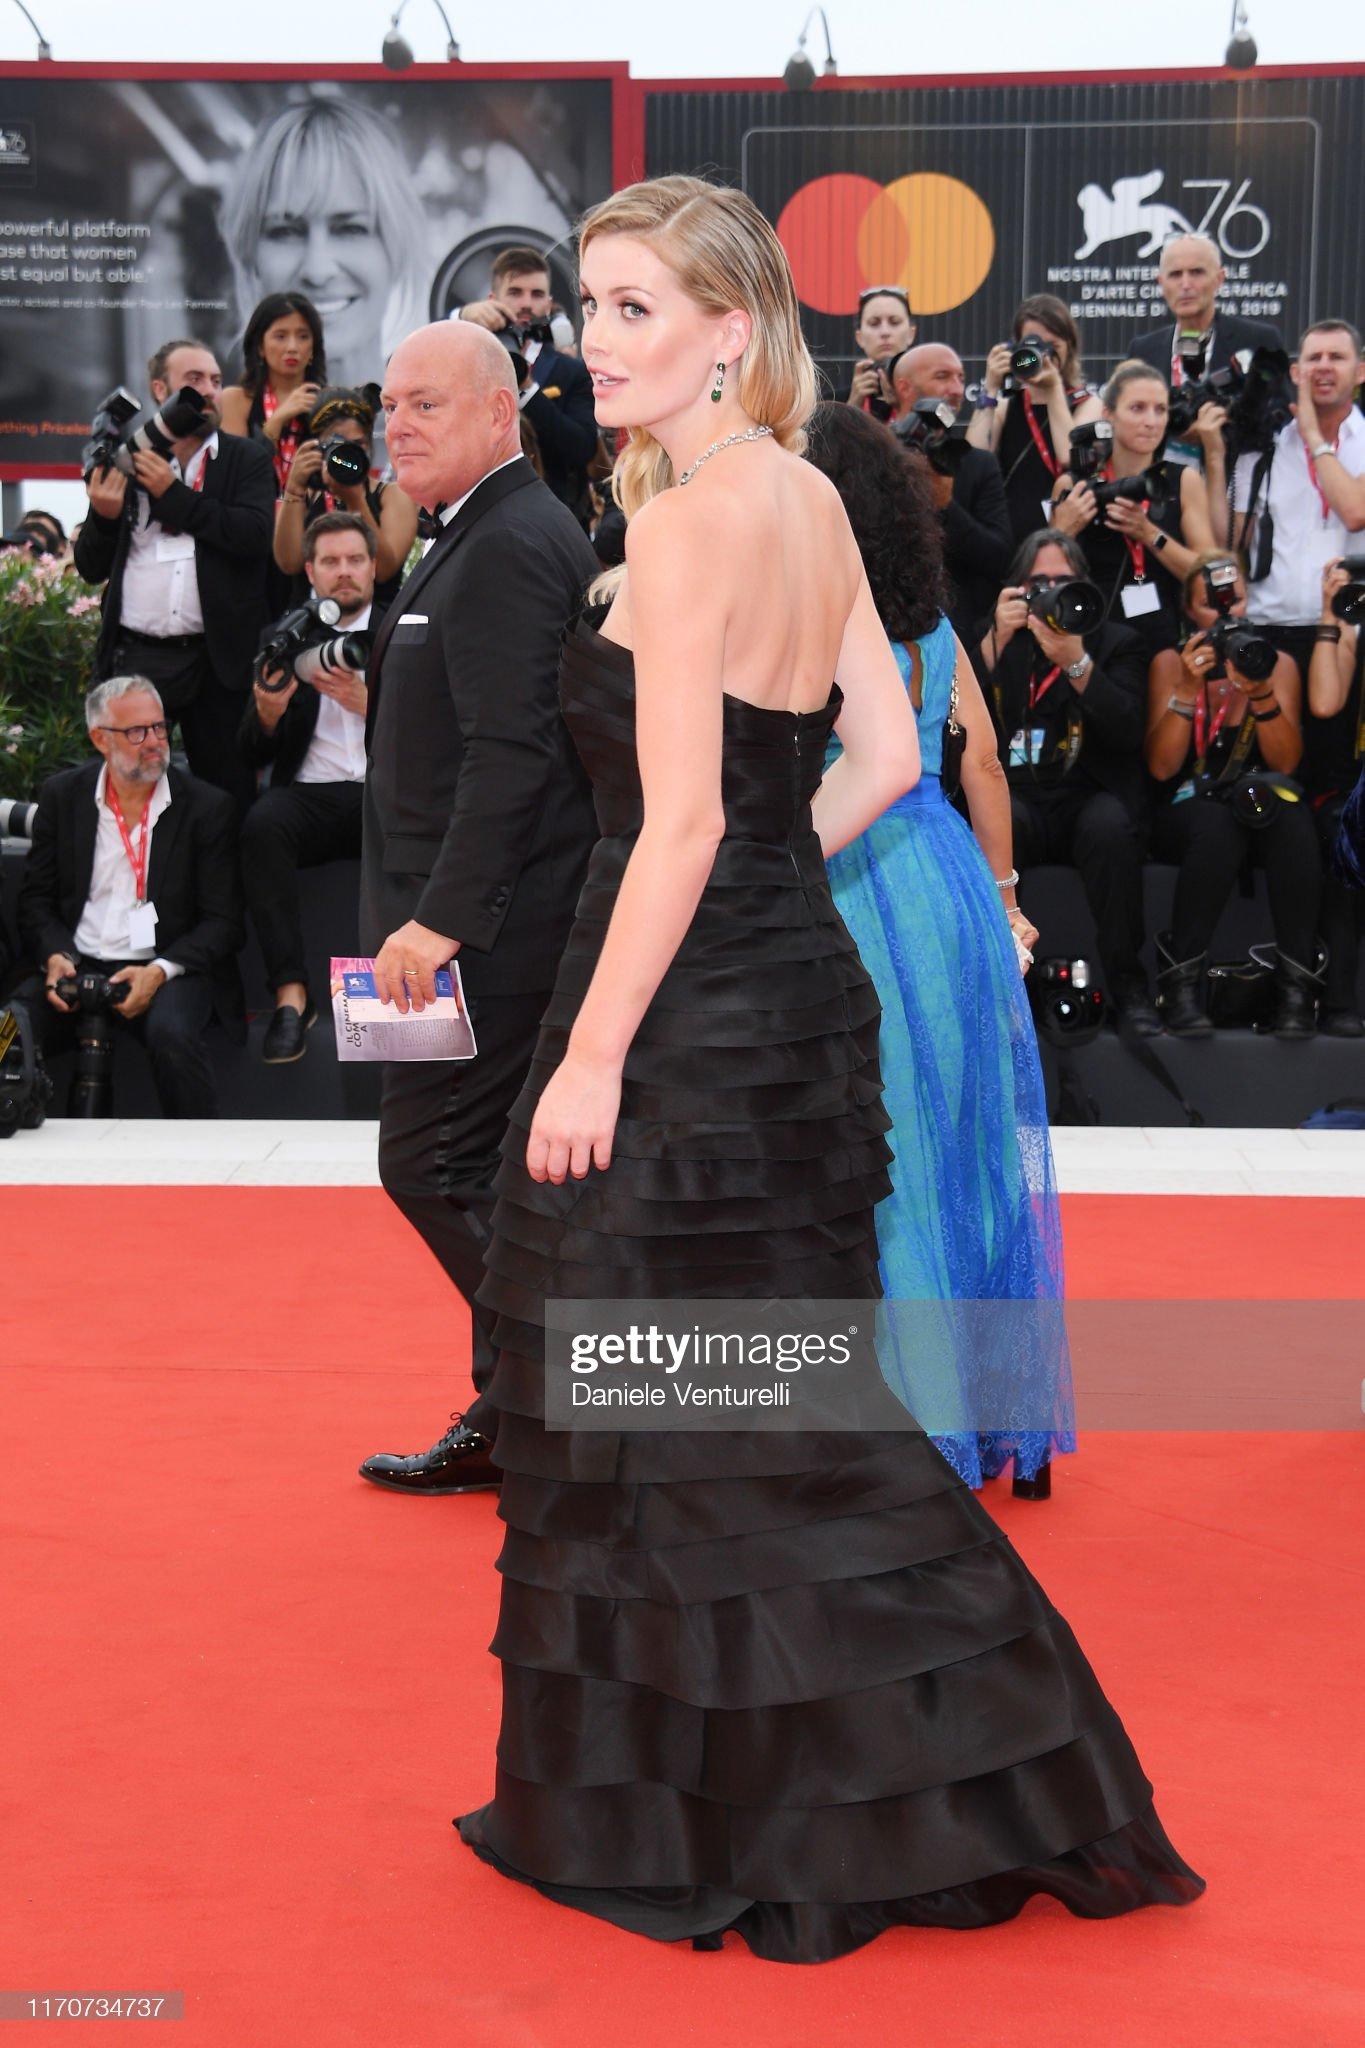 https://media.gettyimages.com/photos/lady-kitty-spencer-walks-the-red-carpet-ahead-of-the-opening-ceremony-picture-id1170734737?s=2048x2048